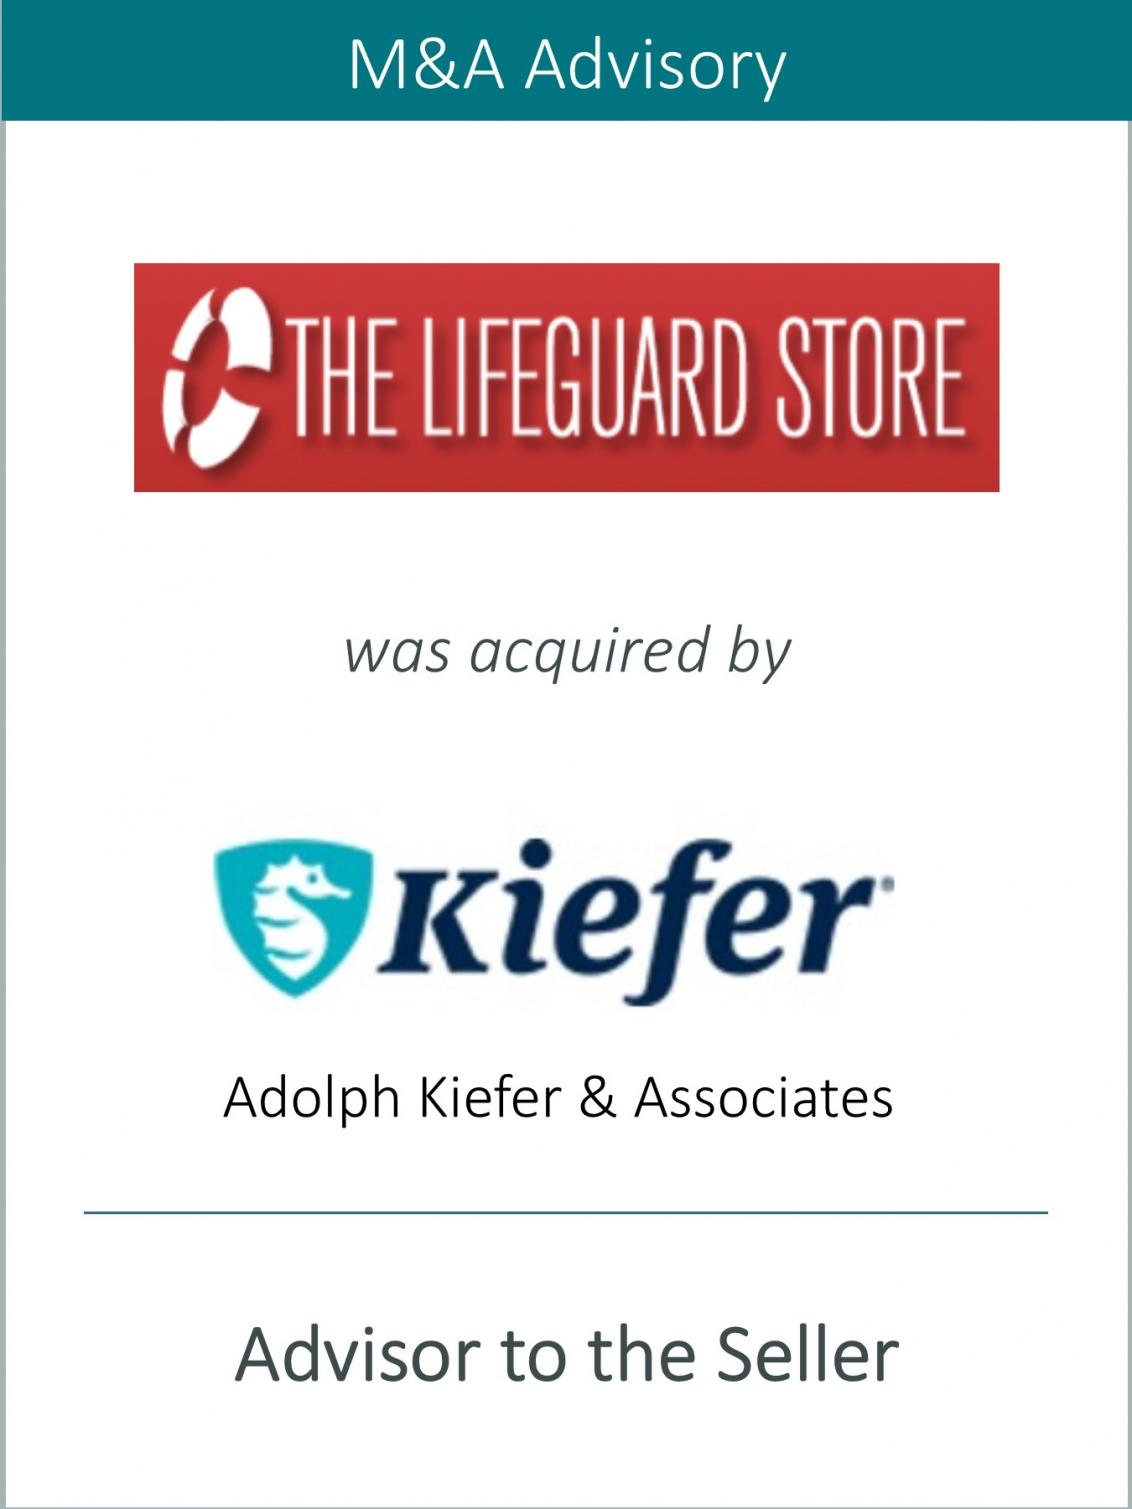 Prairie represents The Lifeguard Store in its Sale to Adolph Kiefer & Associates